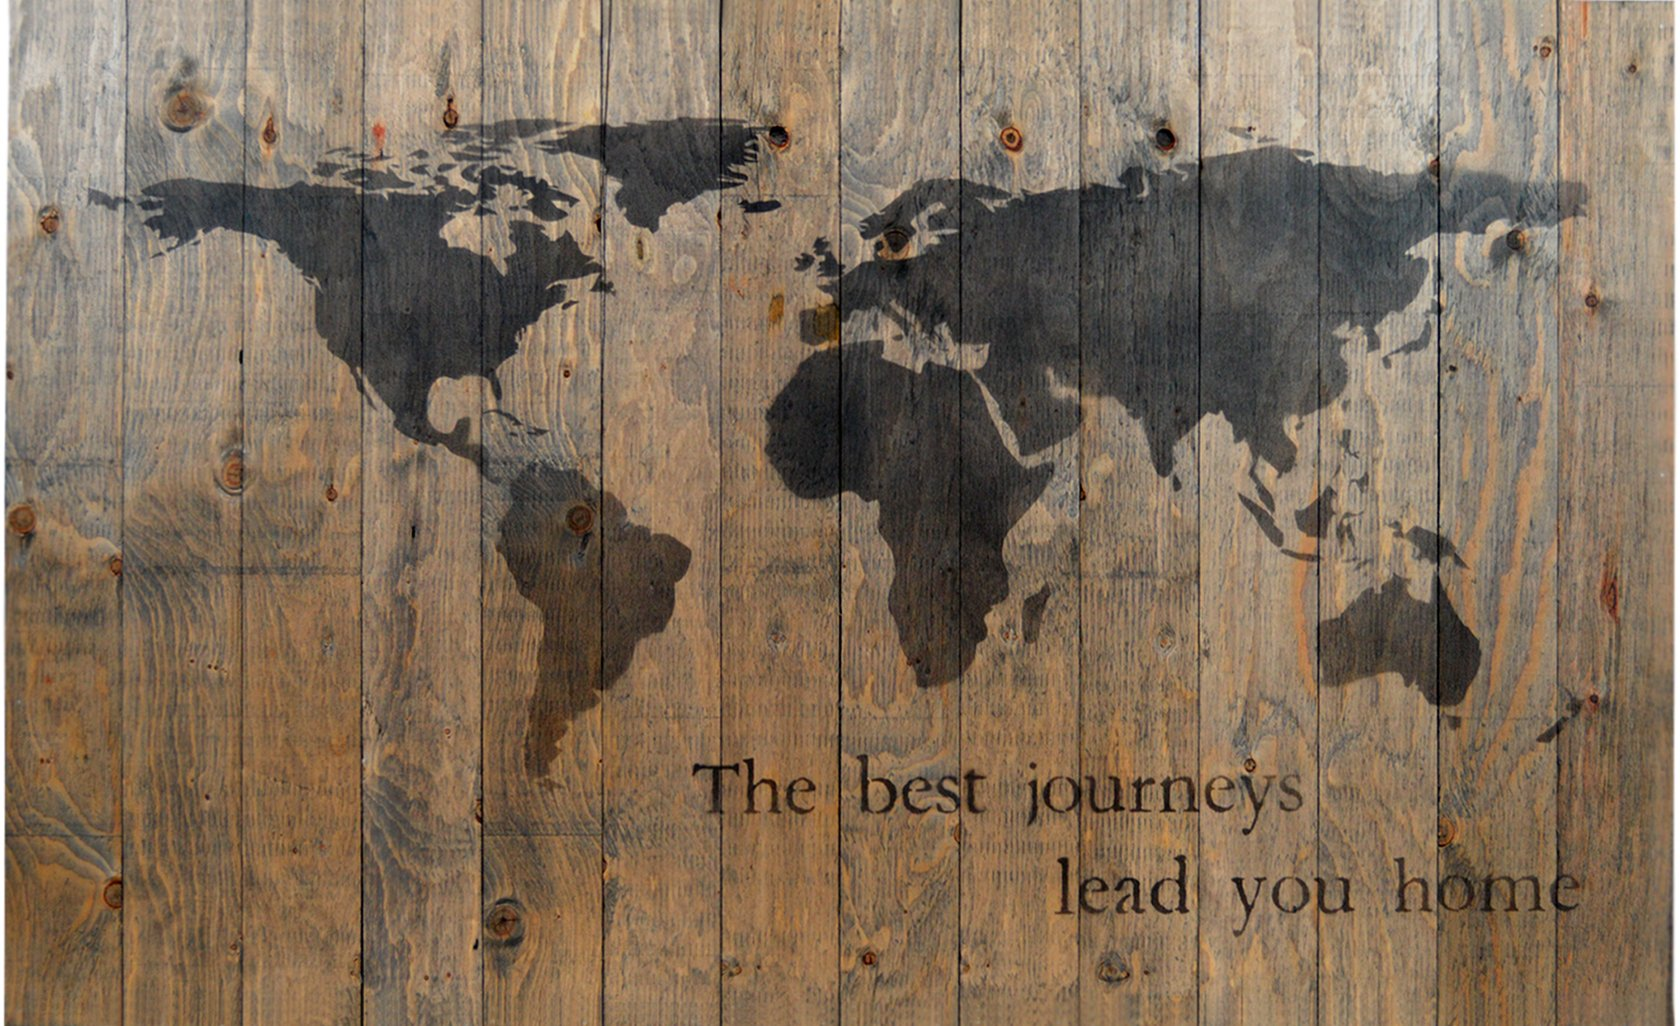 WORLD MAP RUSTIC BARN WOOD PALLET SIGN - THE BEST JOURNEYS LEAD YOU HOME. 42''x26'' Handcrafted elegant antique style wall decor with inspirational quote that will look beautiful in your family home